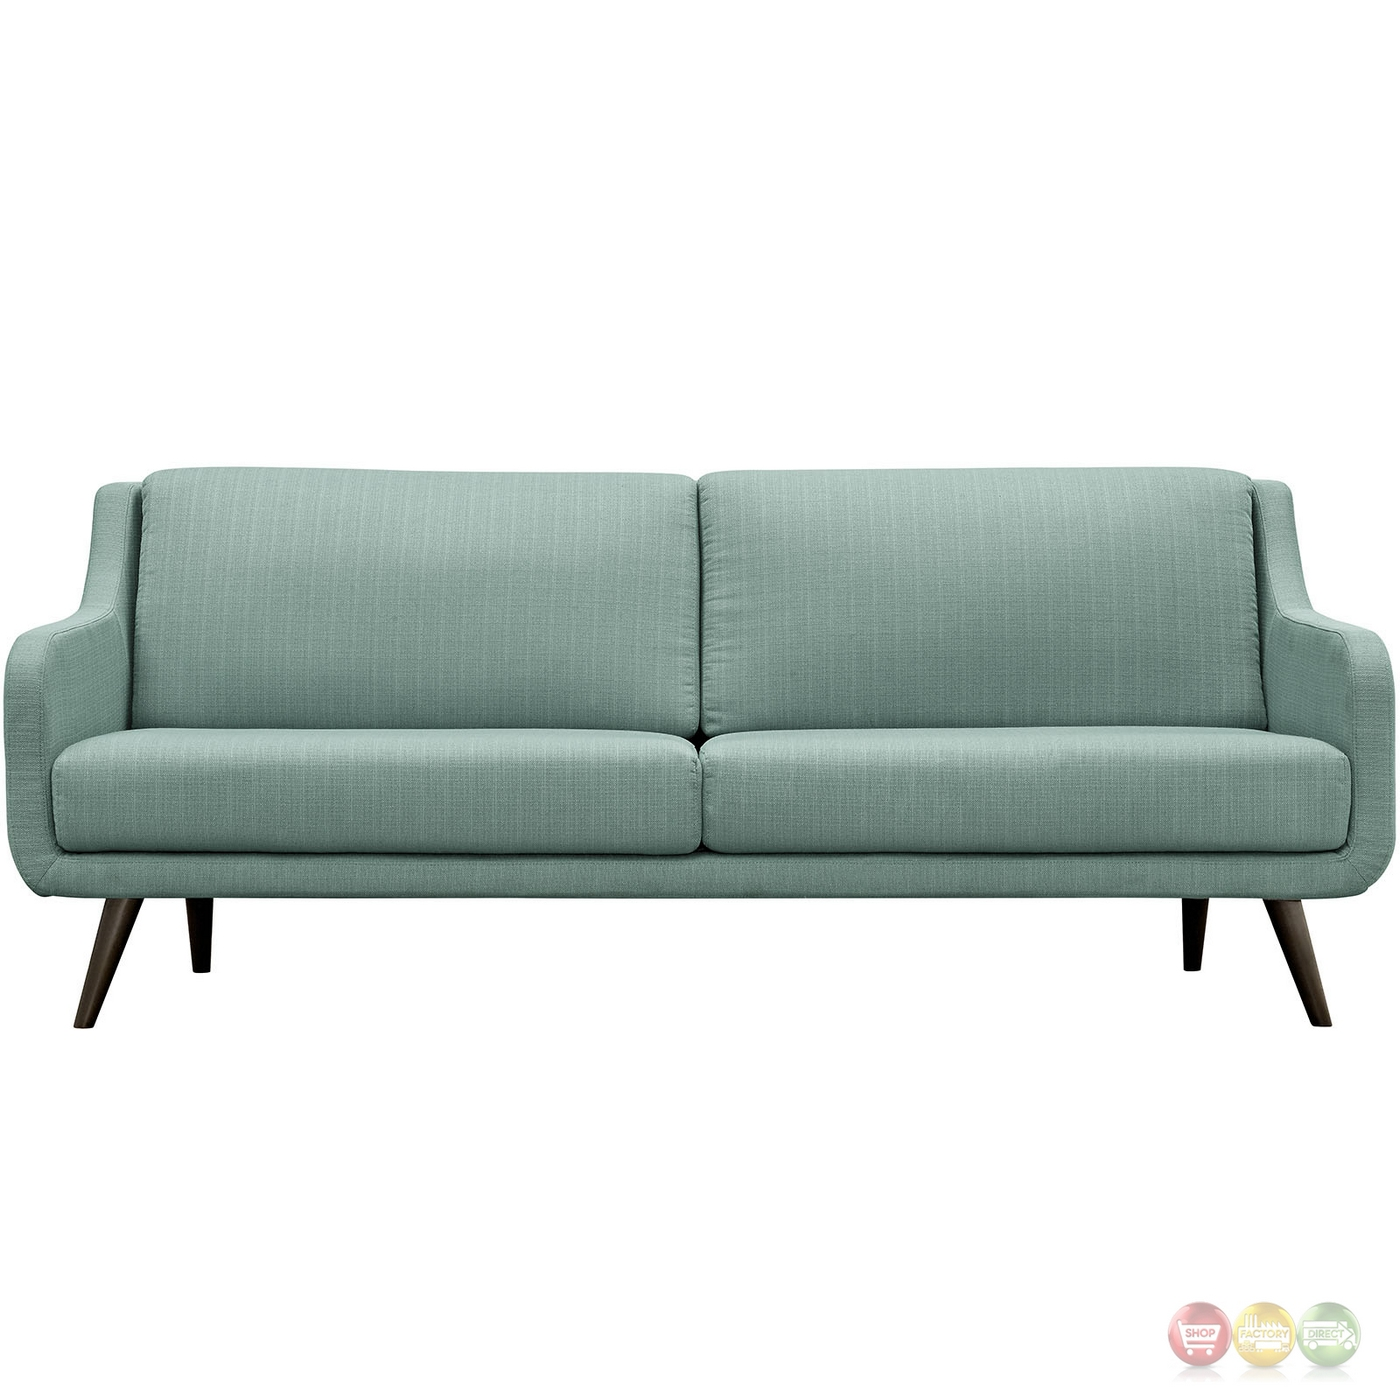 Mid century modern verve upholstered sofa with wood frame for Mid century modern upholstered chair